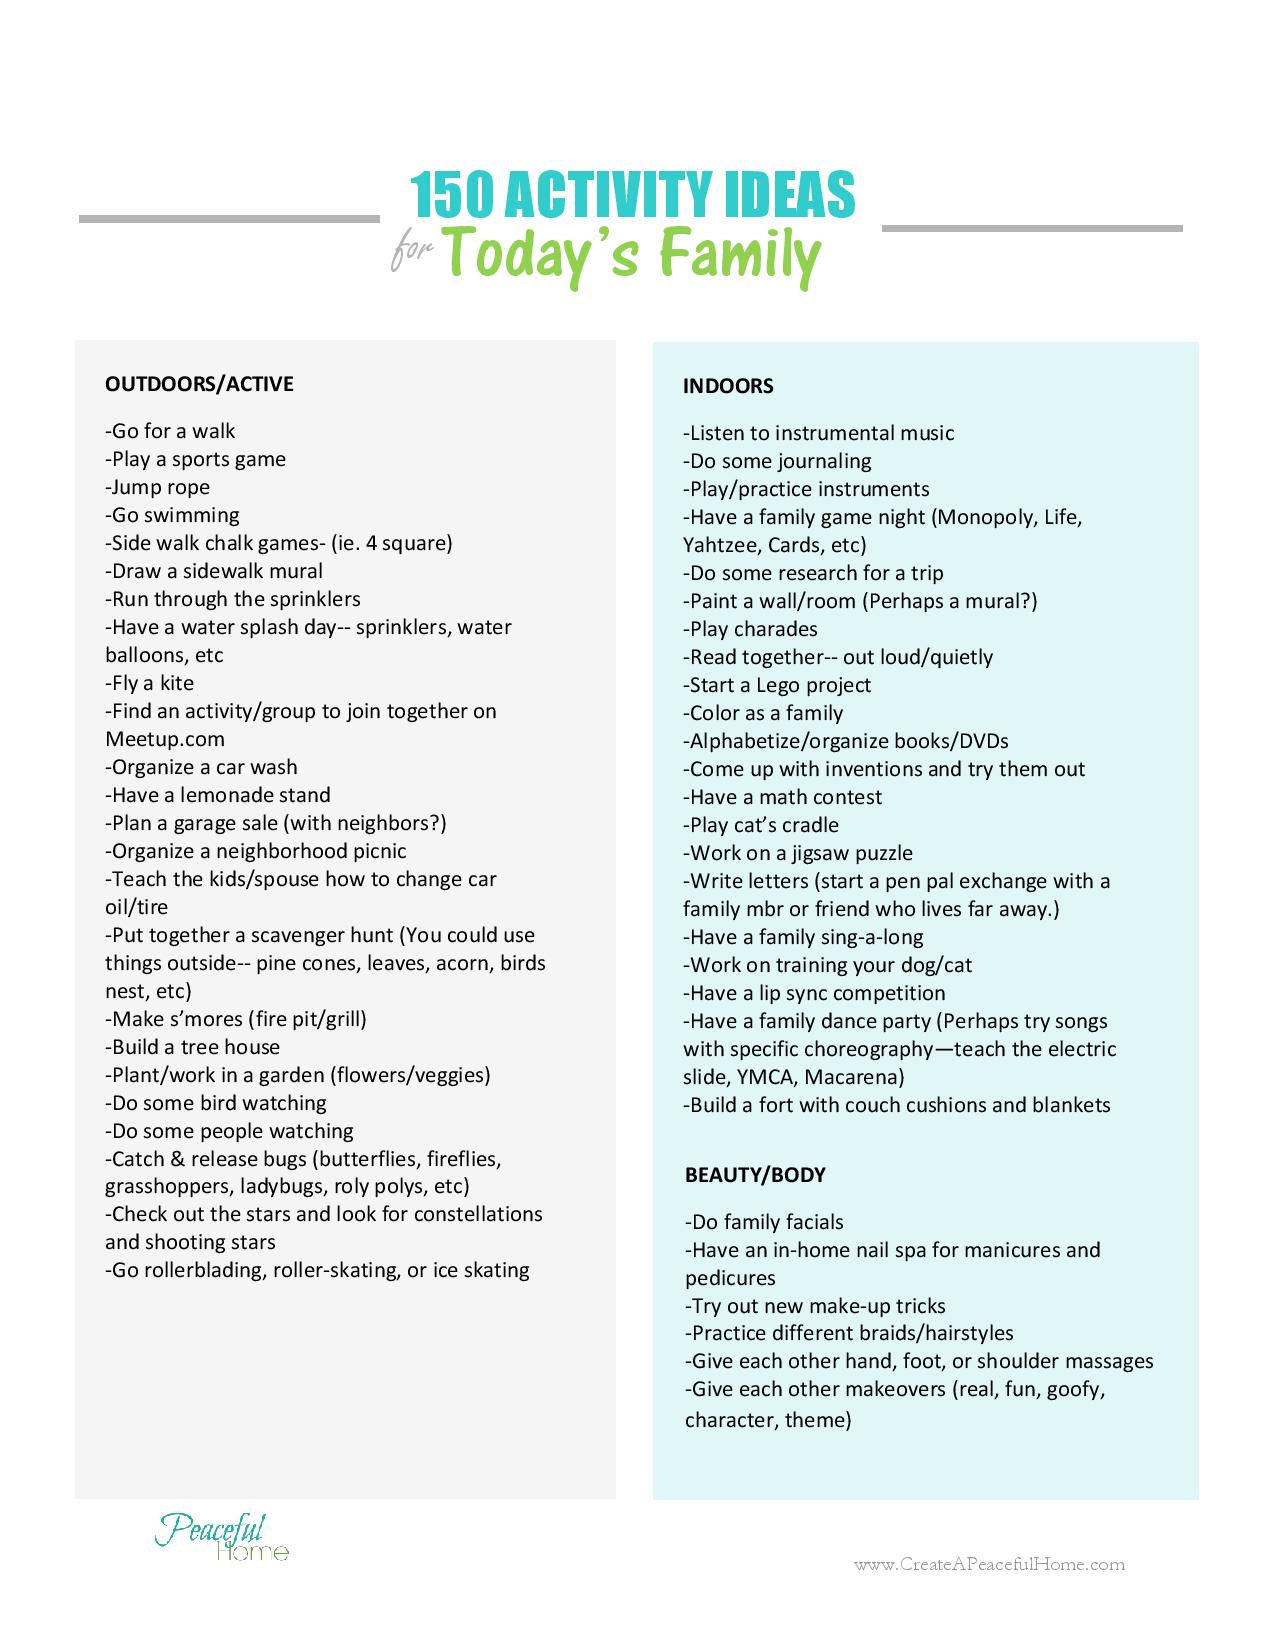 150 Activity Ideas for Today's Family | CreateAPeacefulHome.com